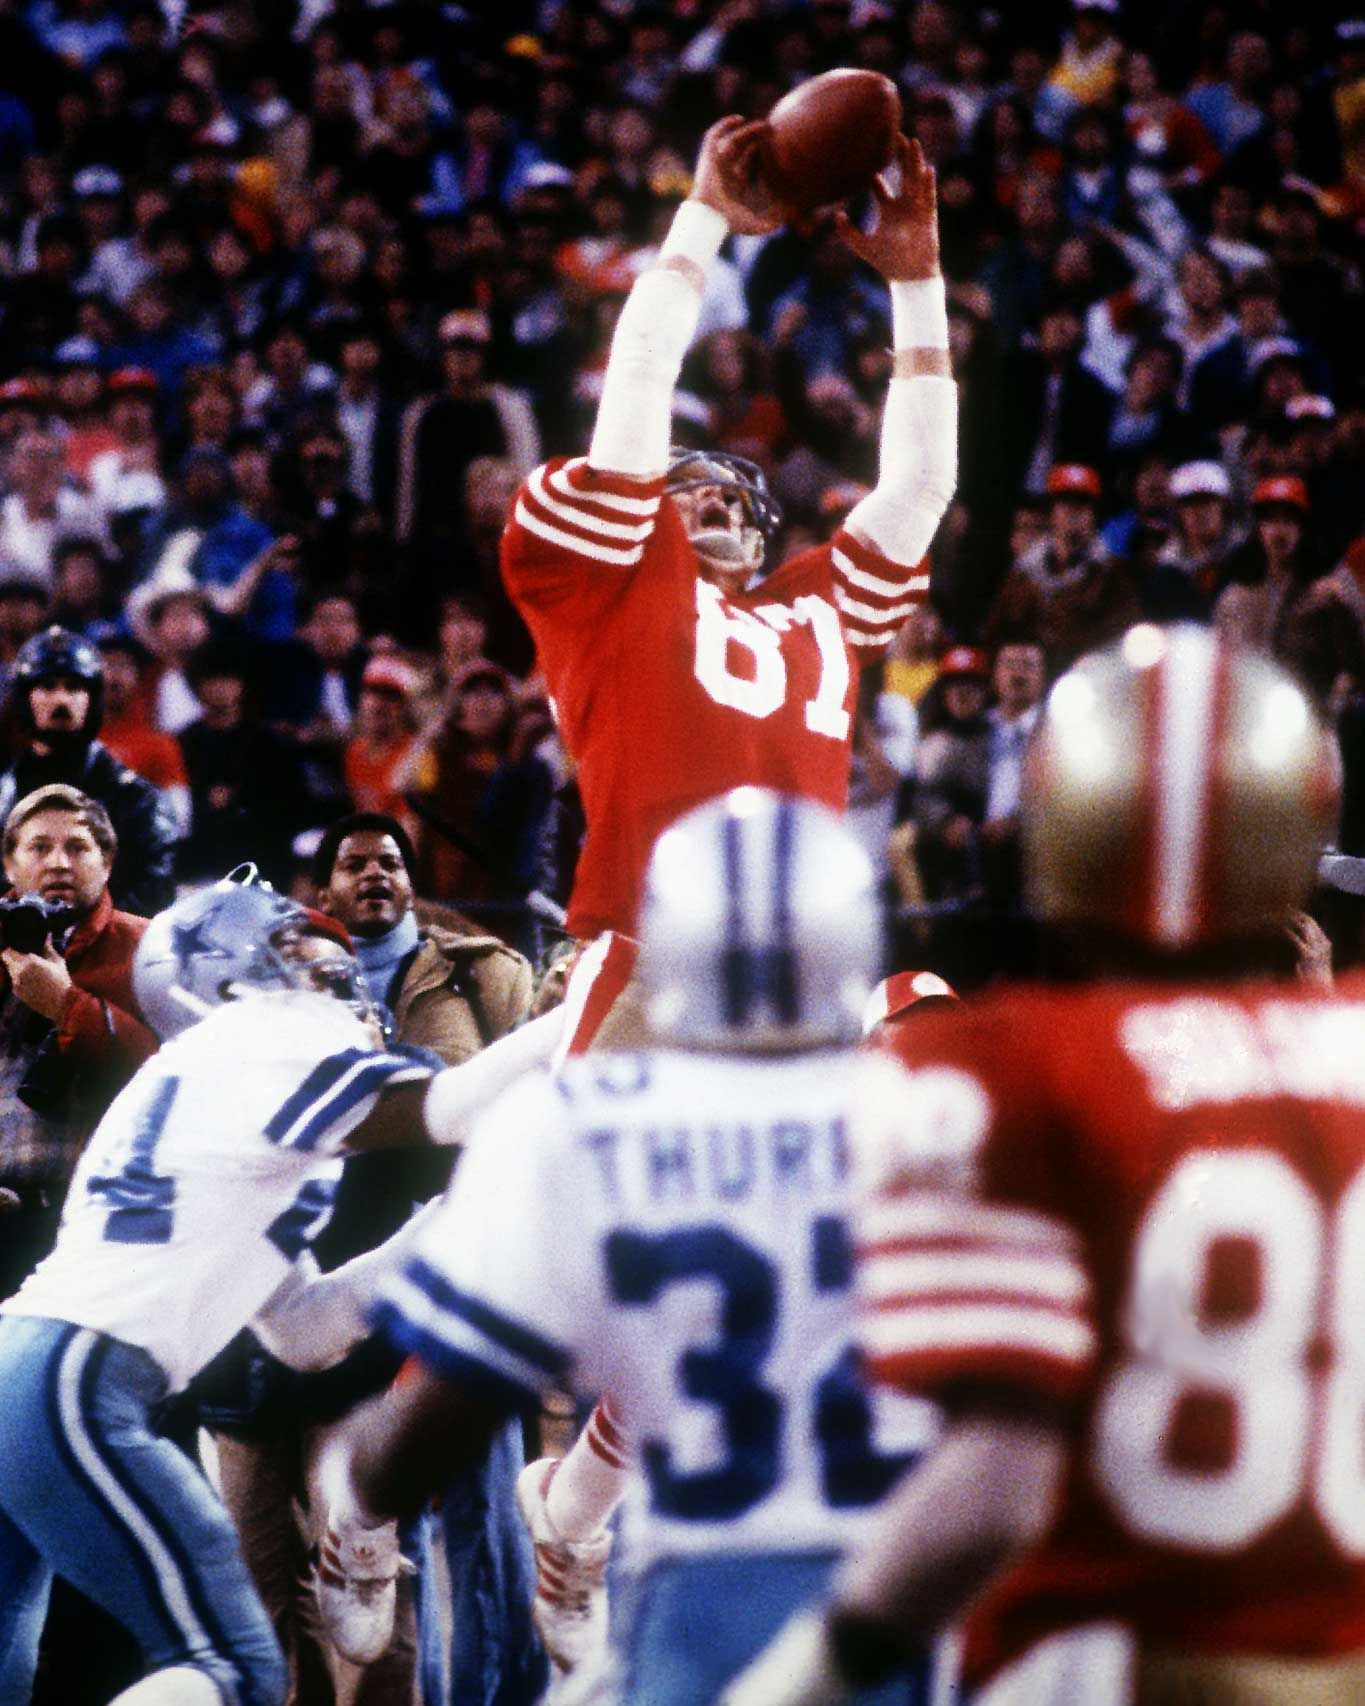 1981 The Catch. NFC Championship Game The Cowboys had a